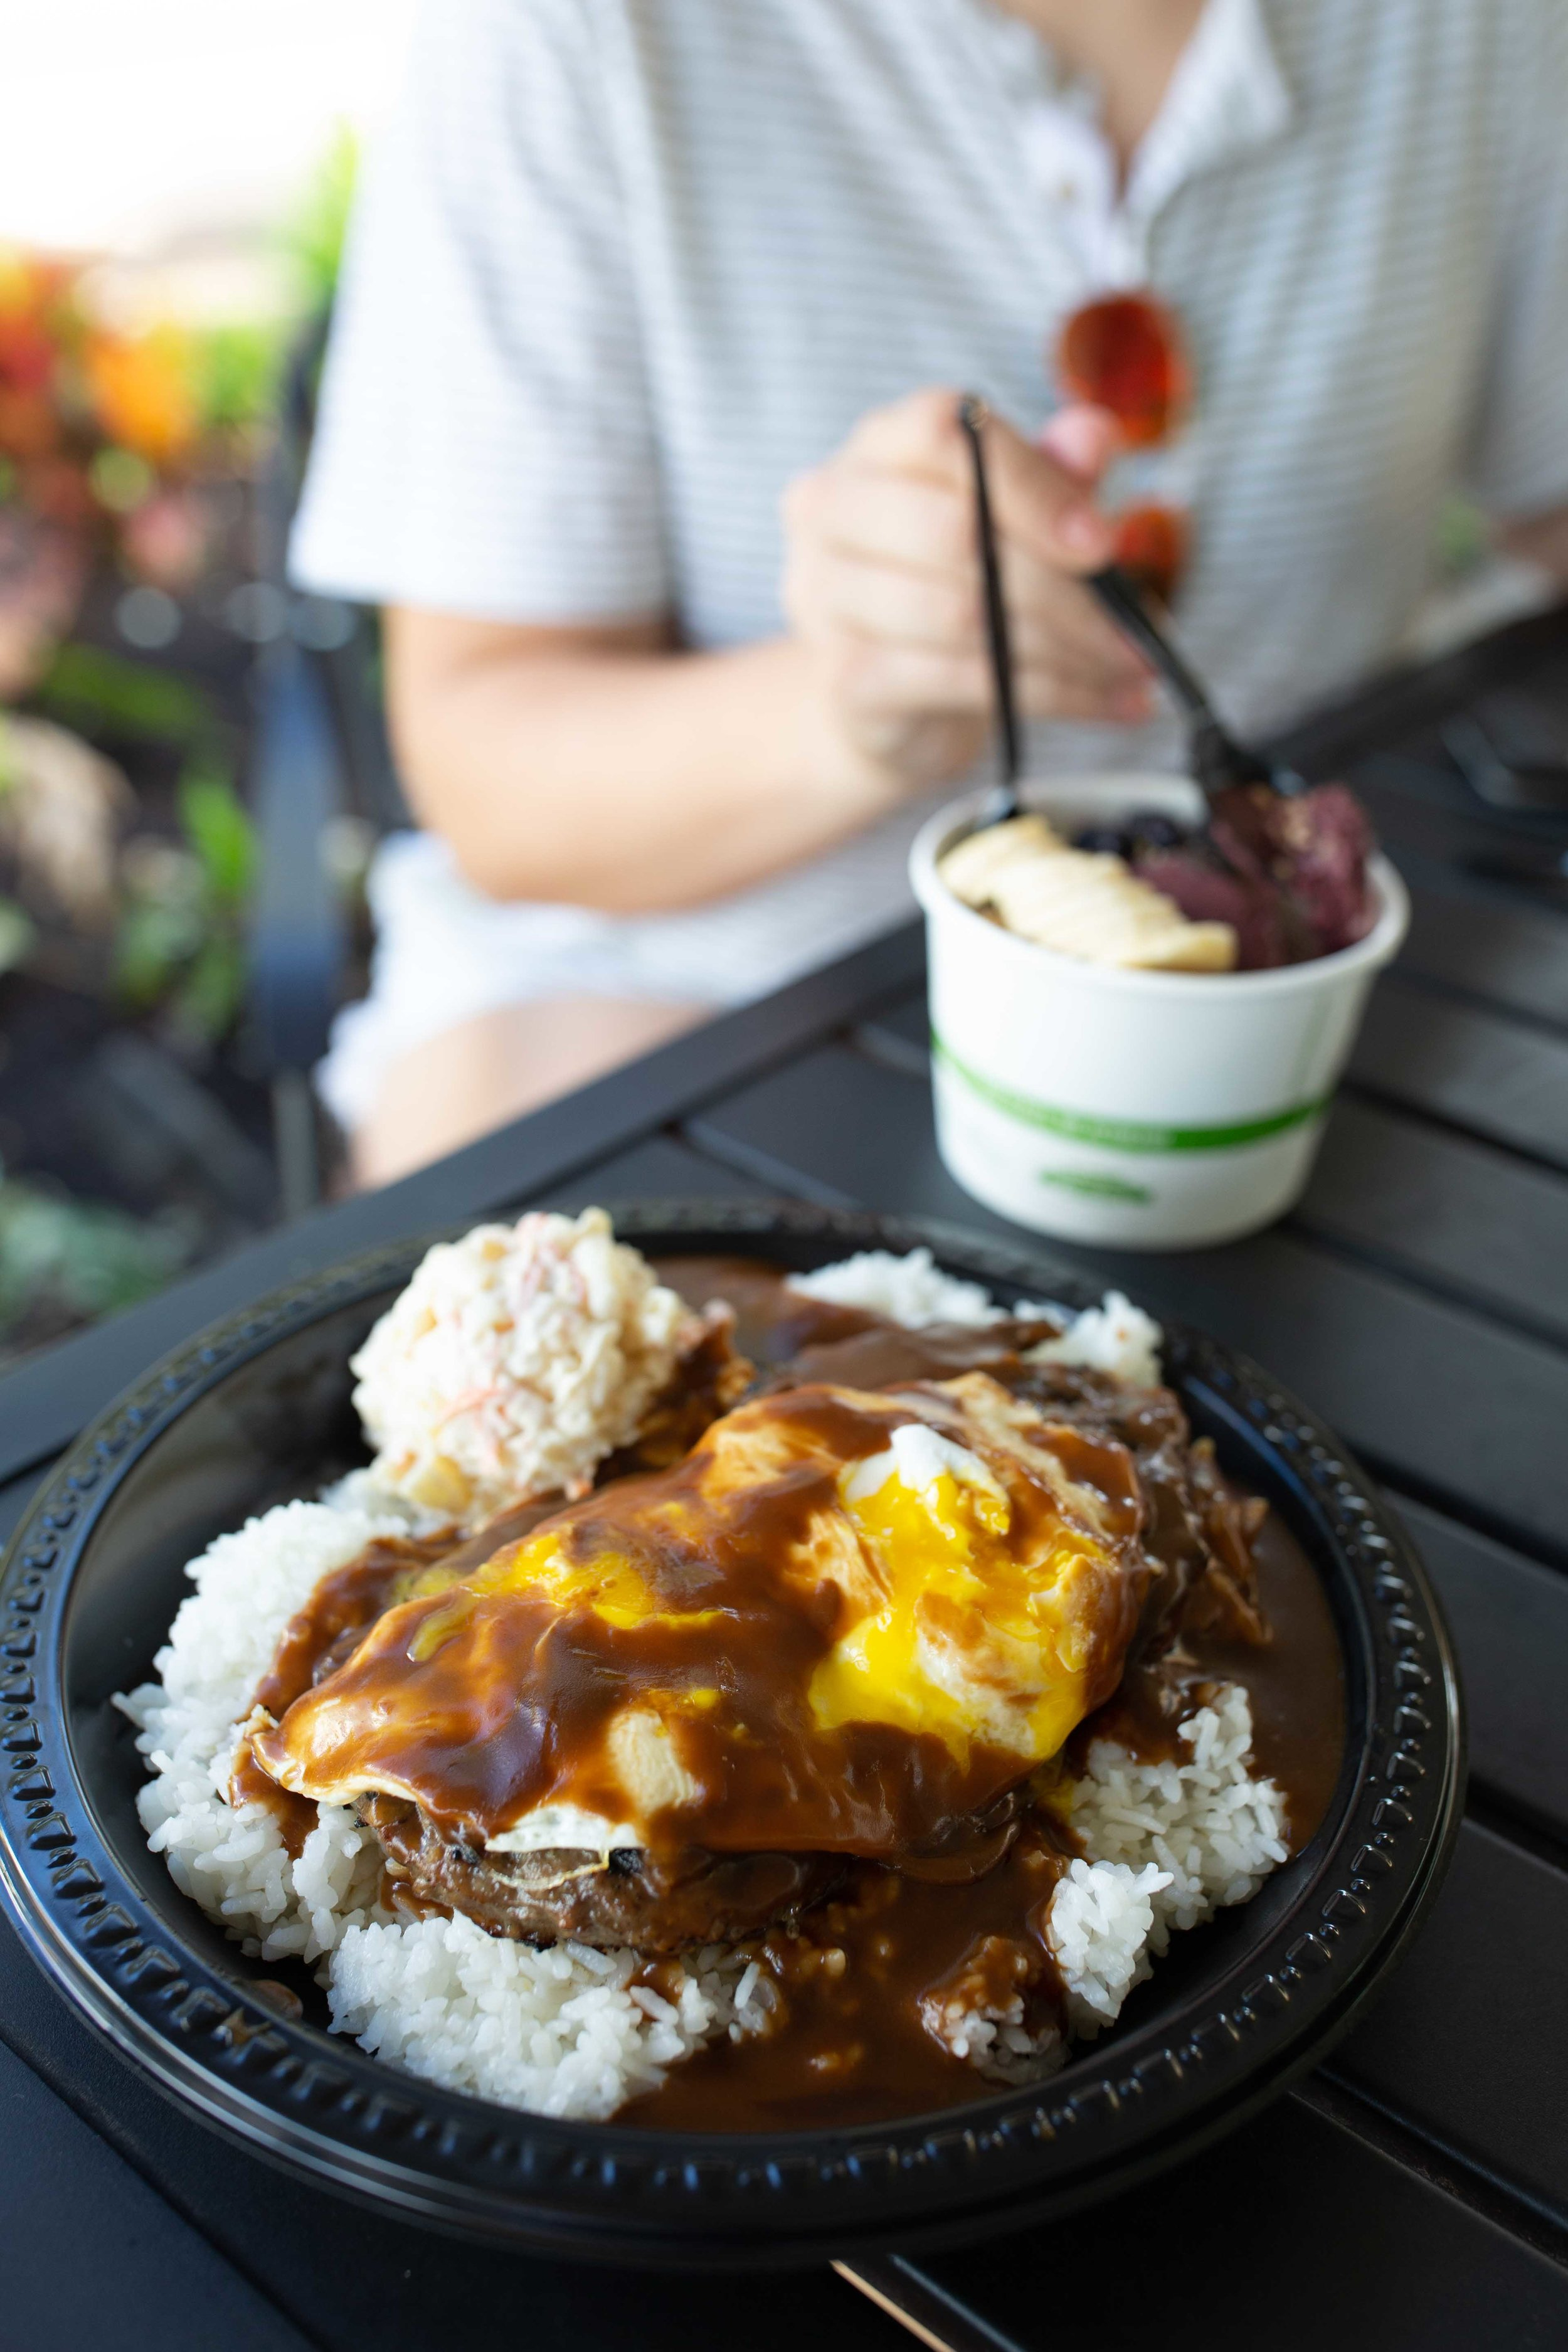 Ted's Bakery Loco Moco